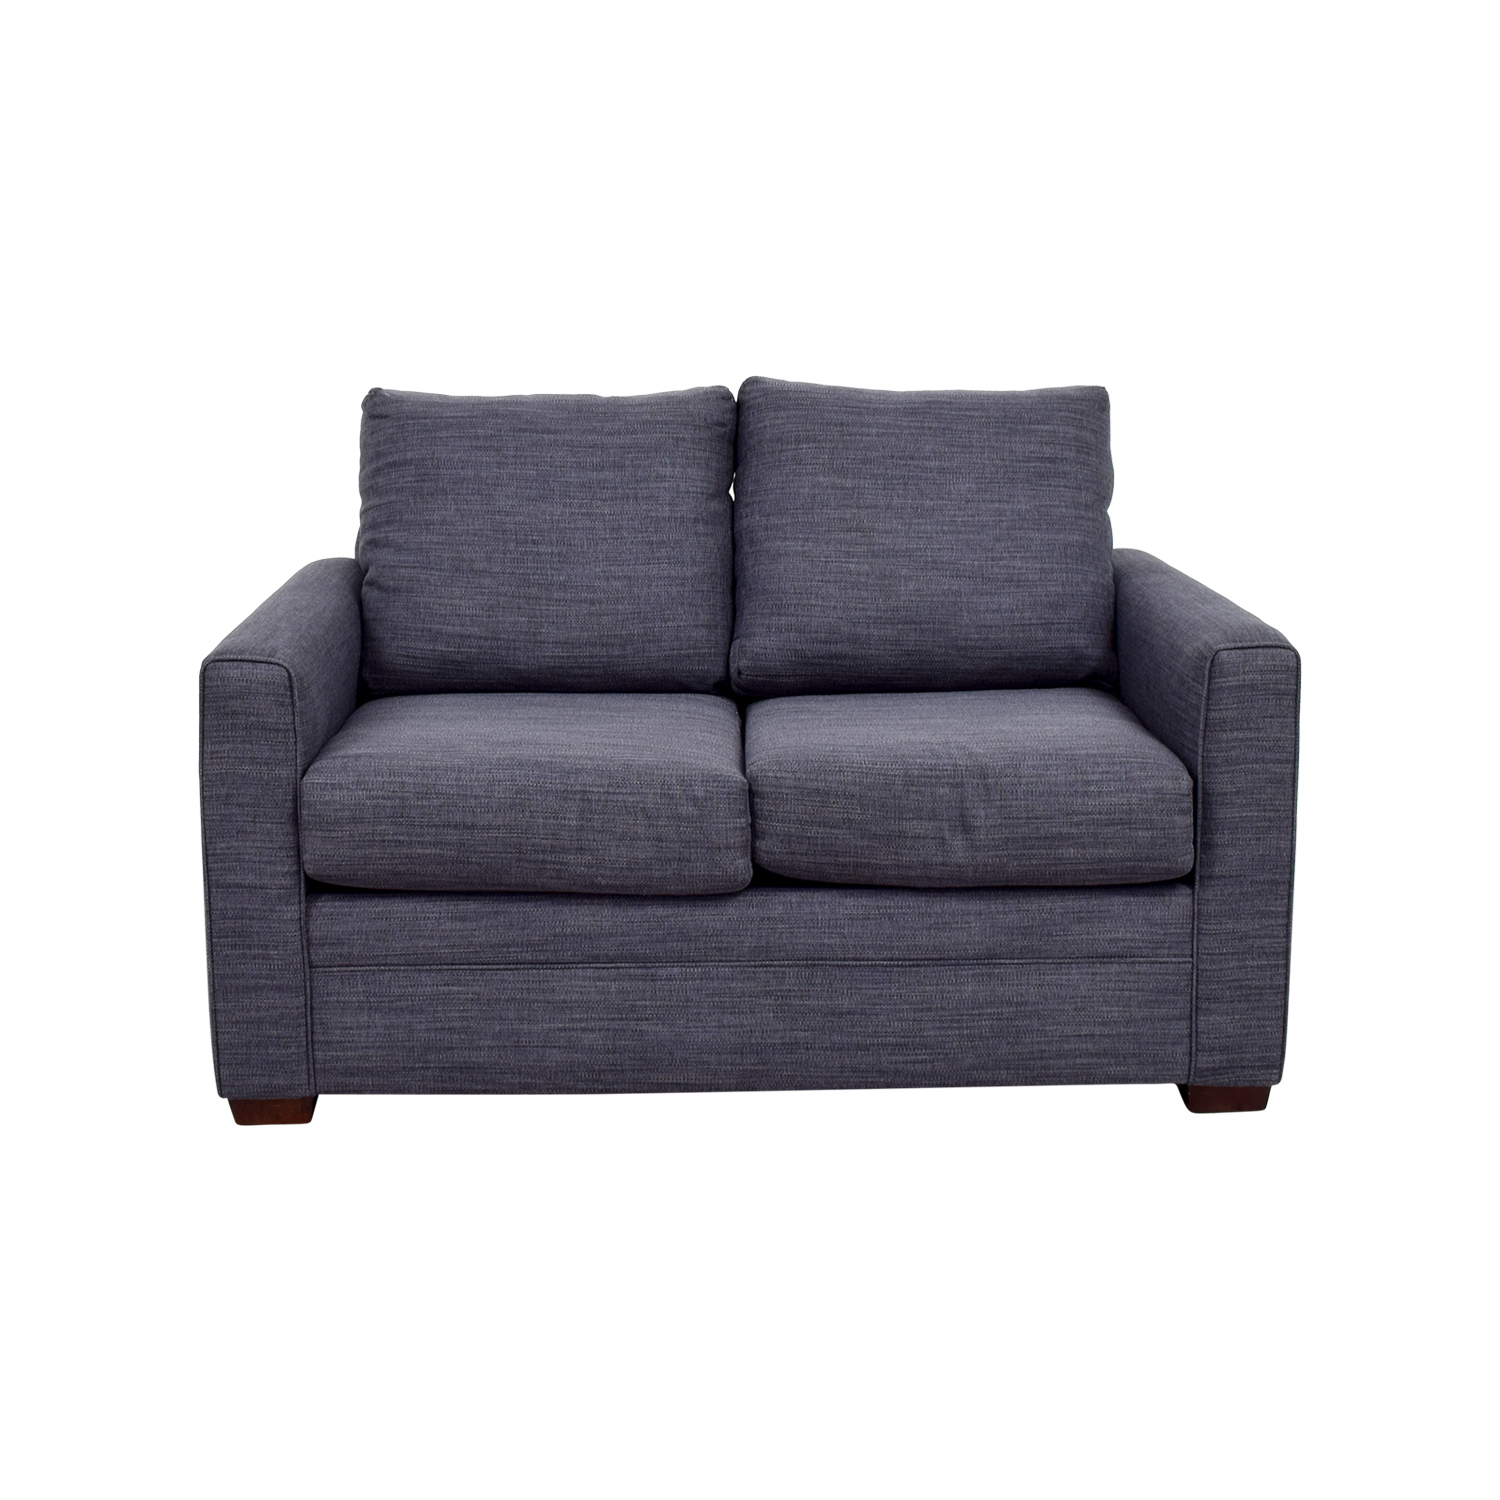 34 Off Bob 39 S Furniture Bob 39 S Furniture Navy Blue Love Seat Sofas